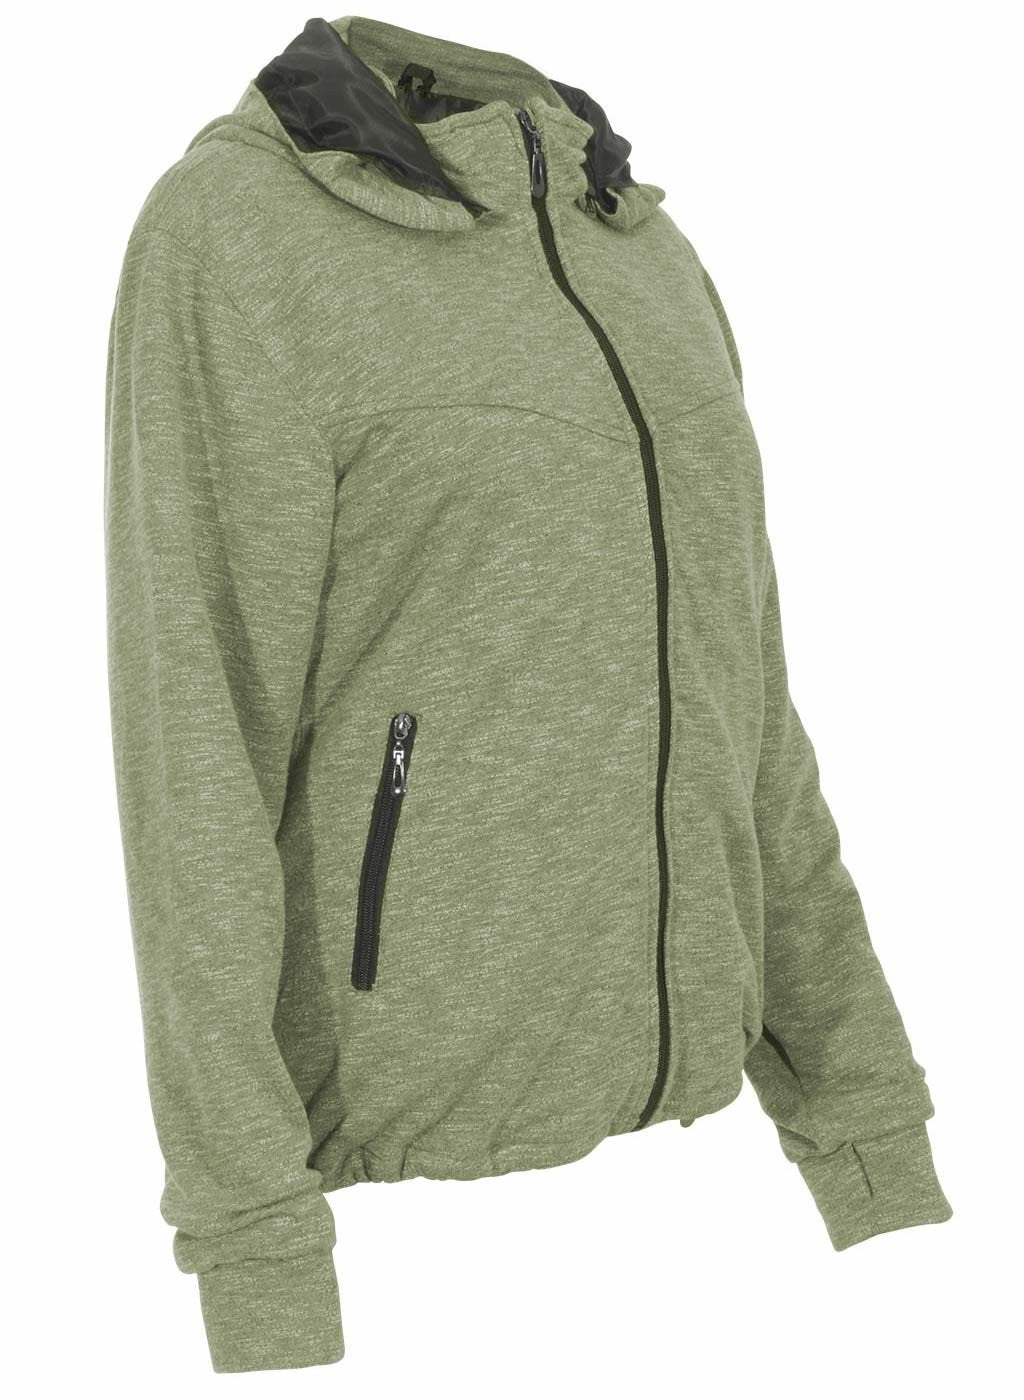 Green Womens Travel Jacket | | Global Travel Clothings